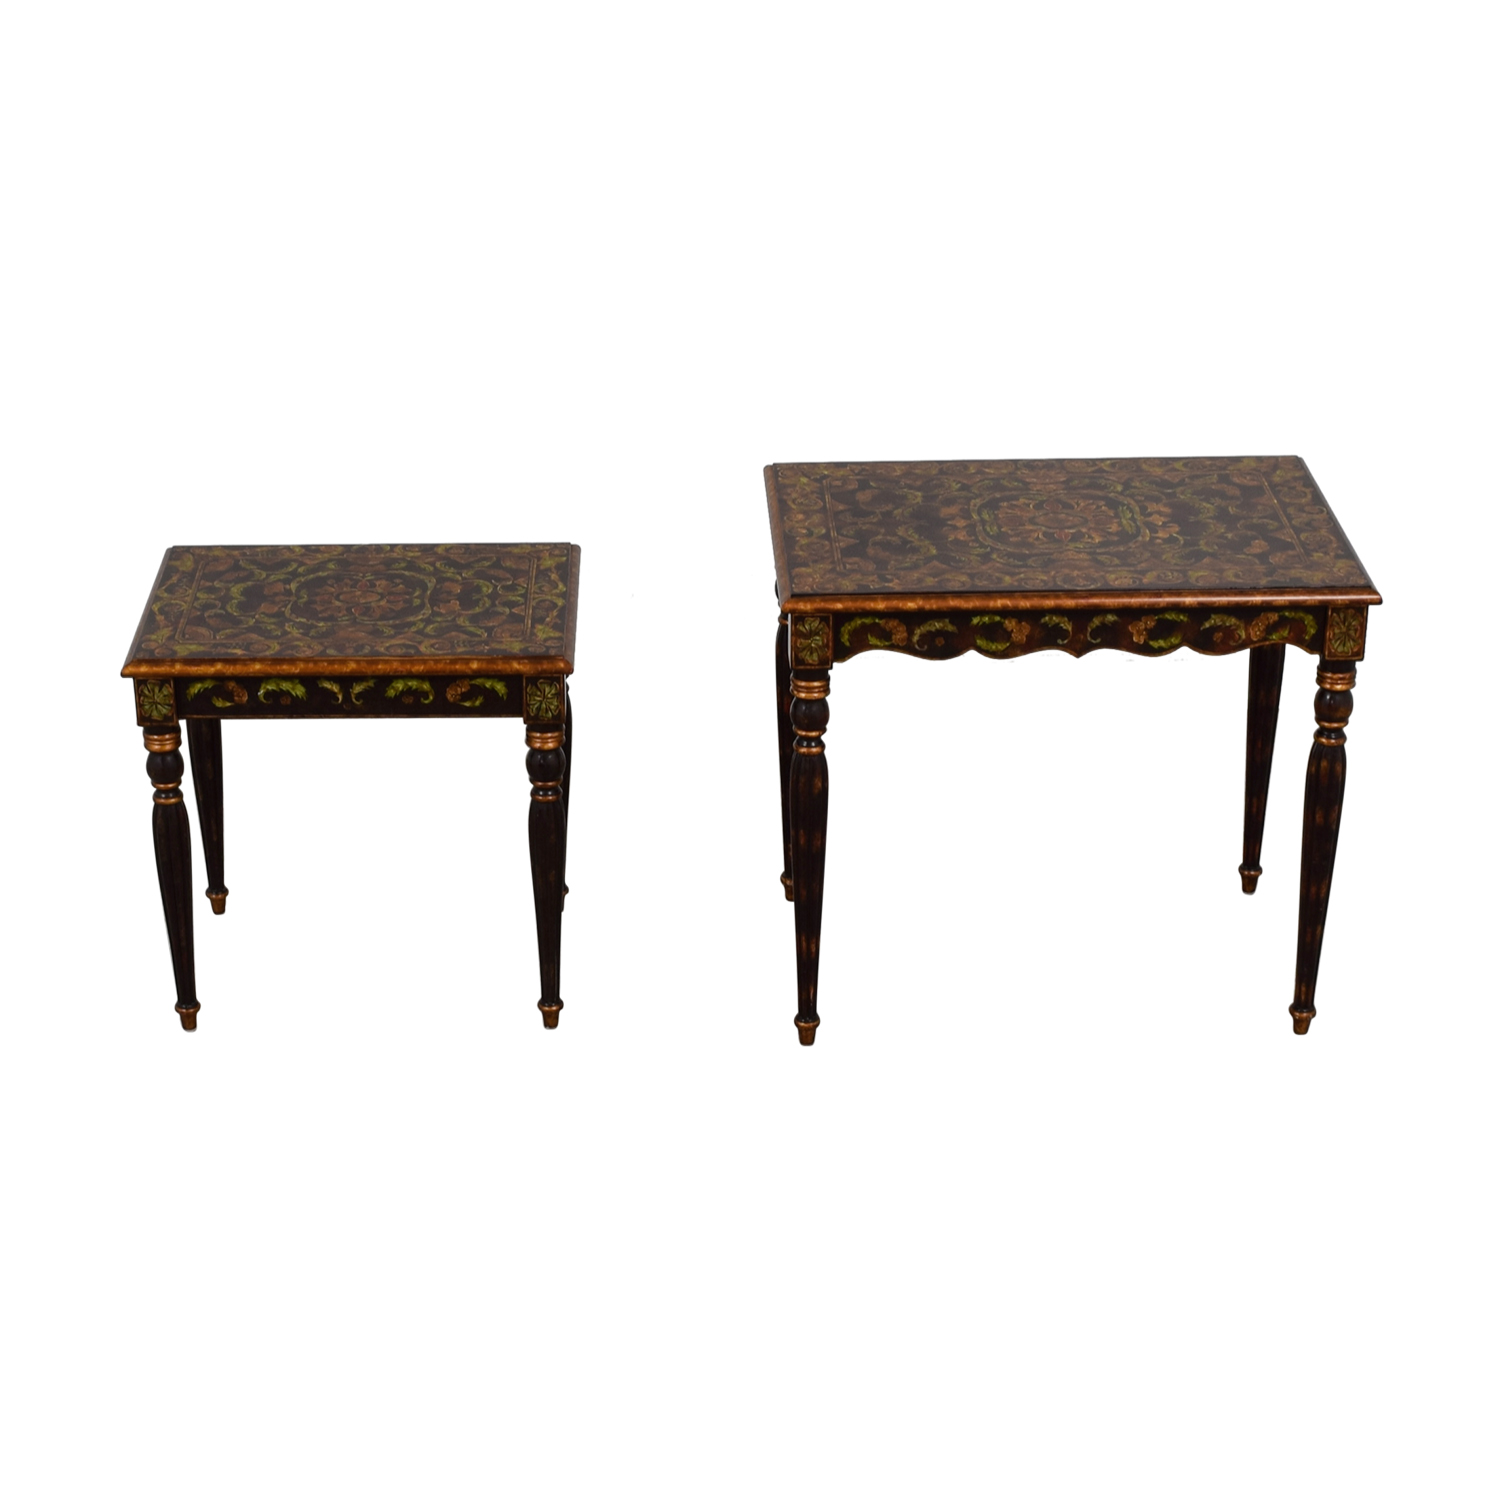 shop Sarried Handpainted Wood Nesting Tables Sarried